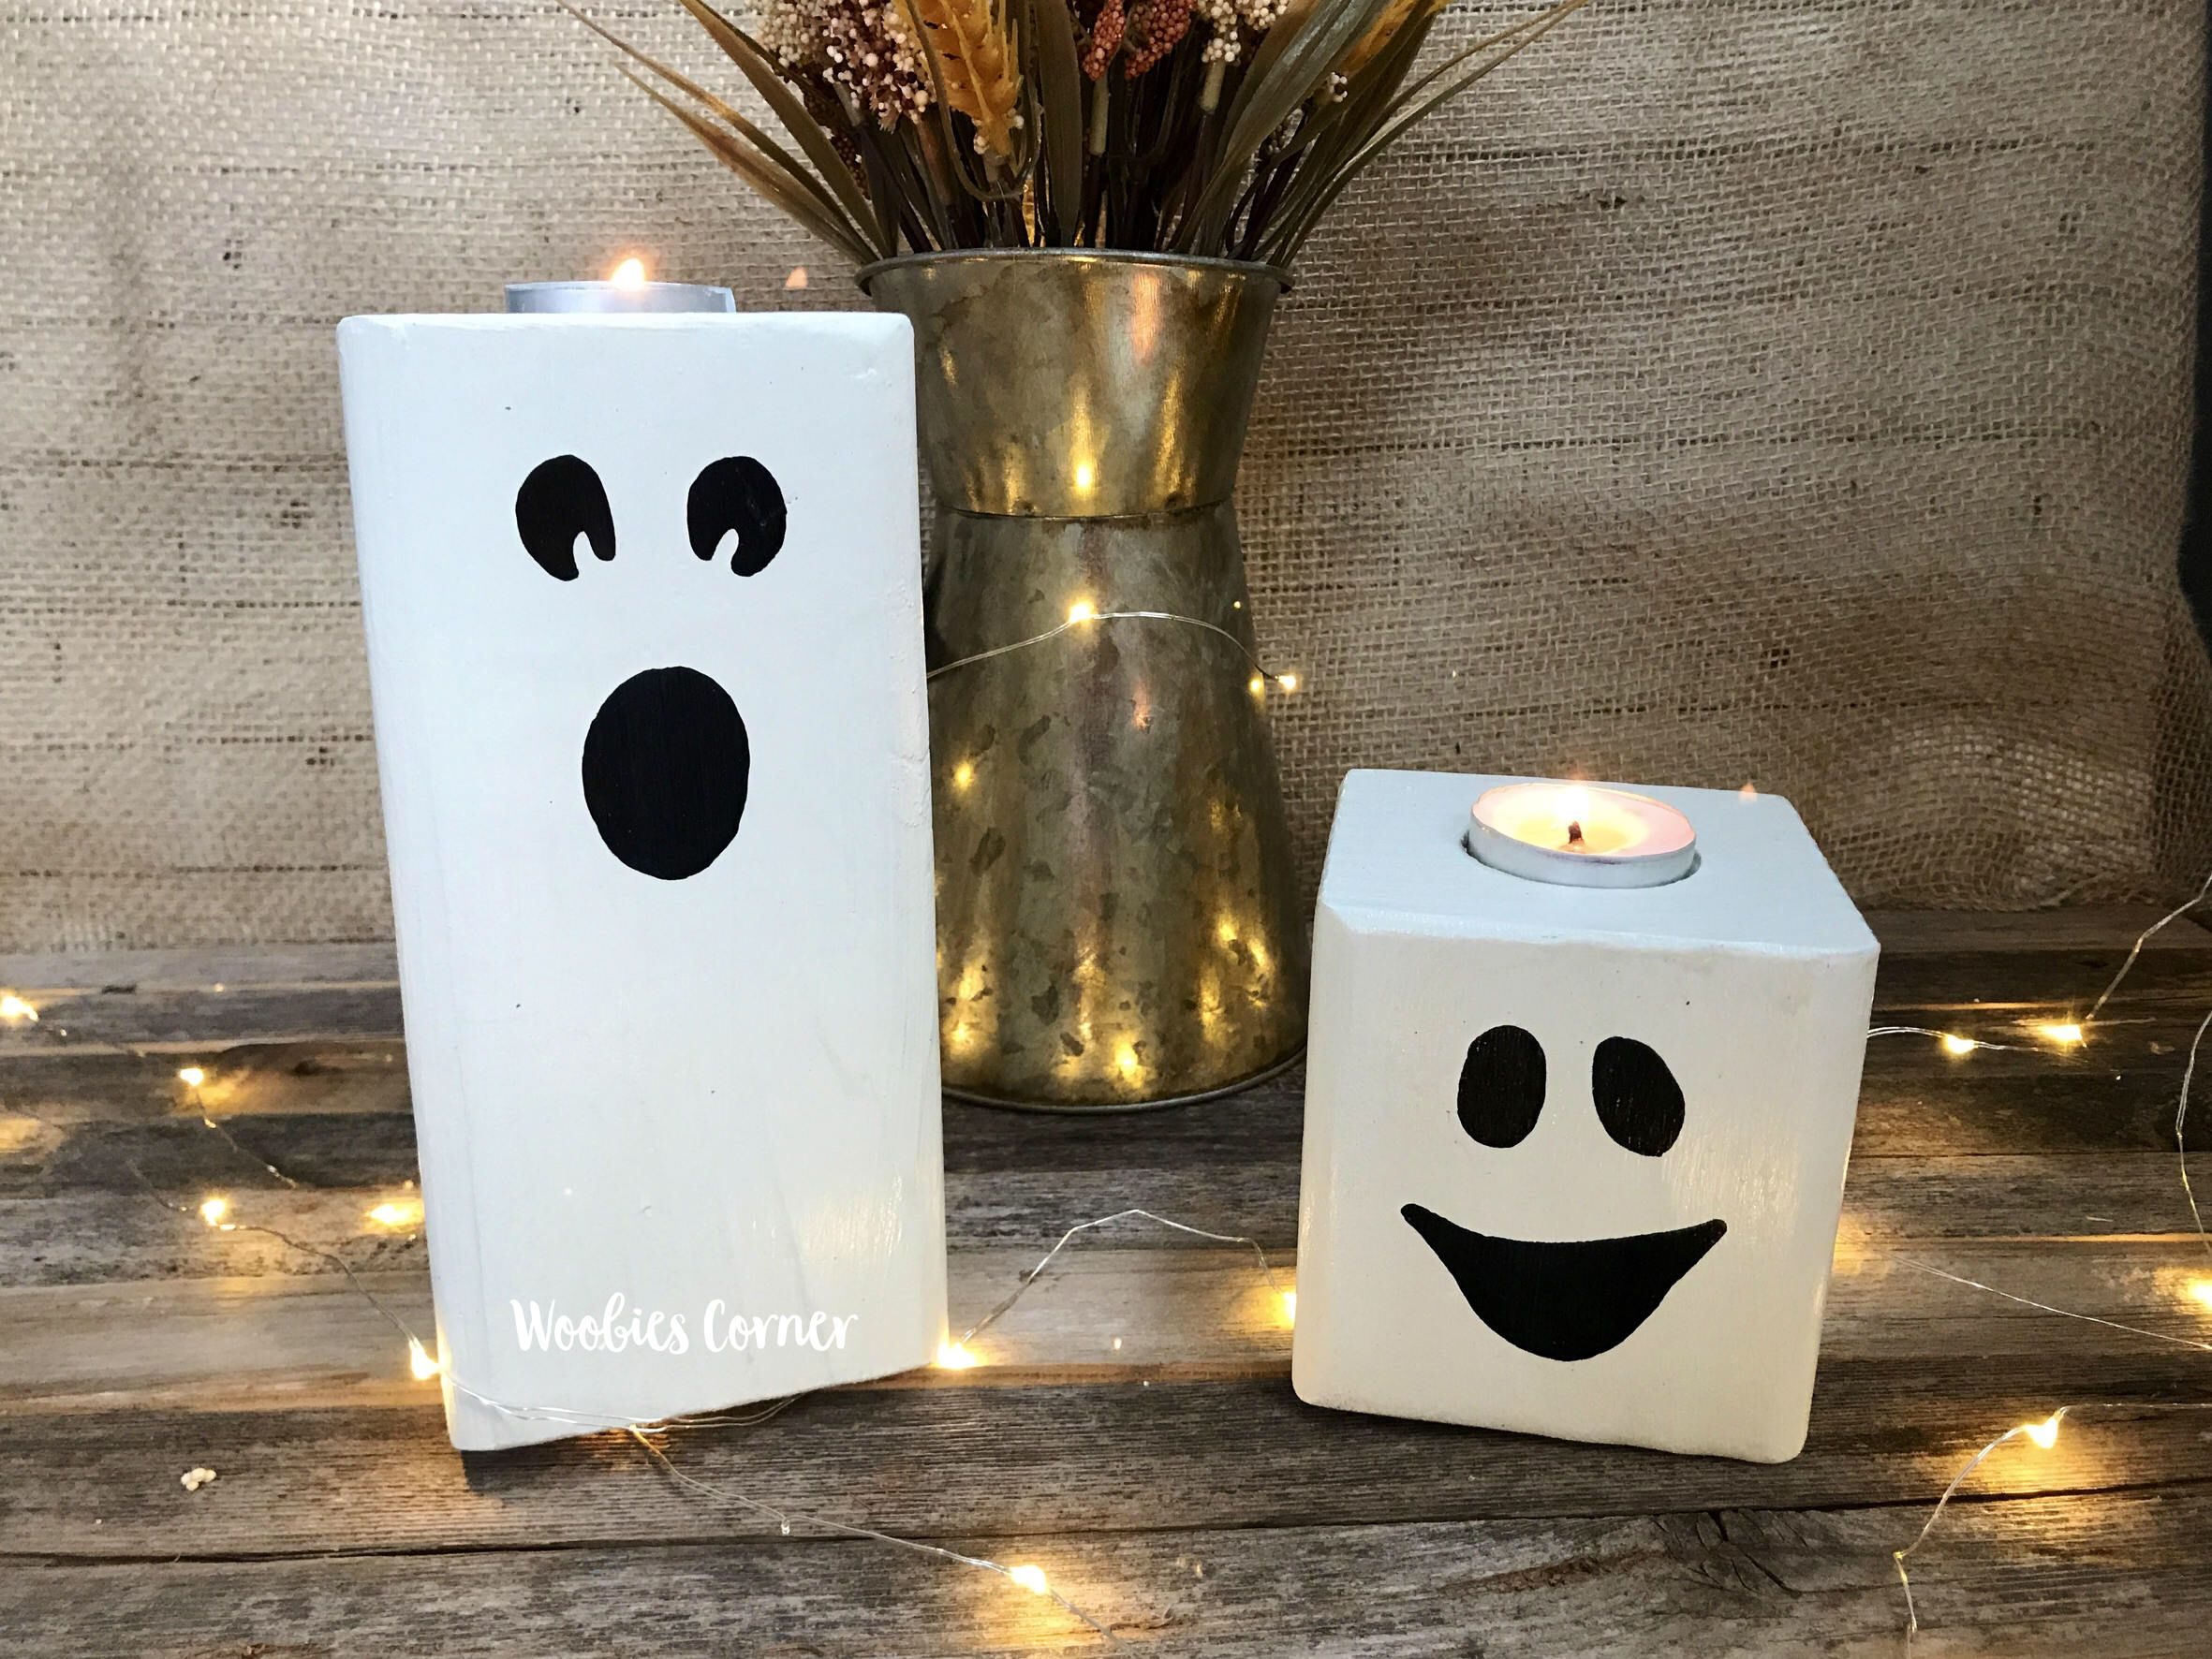 simple festival halloween scary collections homemade party ideas diy gallery cabinet decorations decor cozy rustic